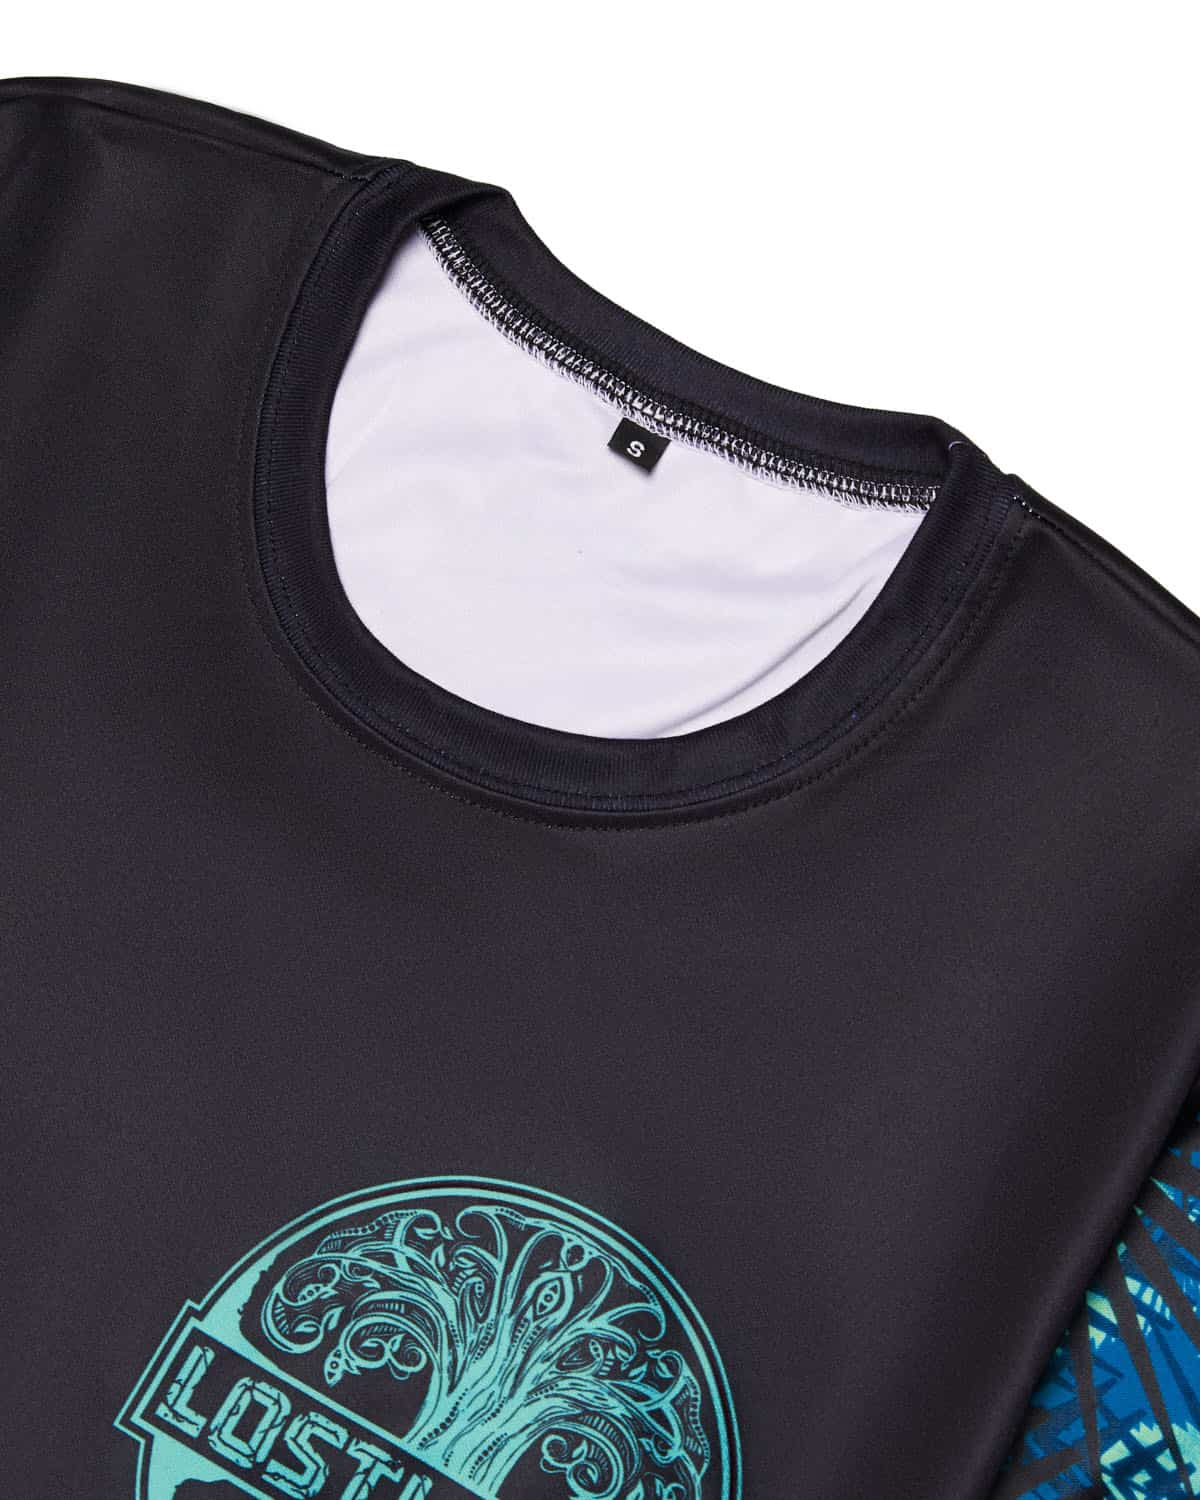 Official Lost Lands 2018 T-Shirt (Black/Blue)